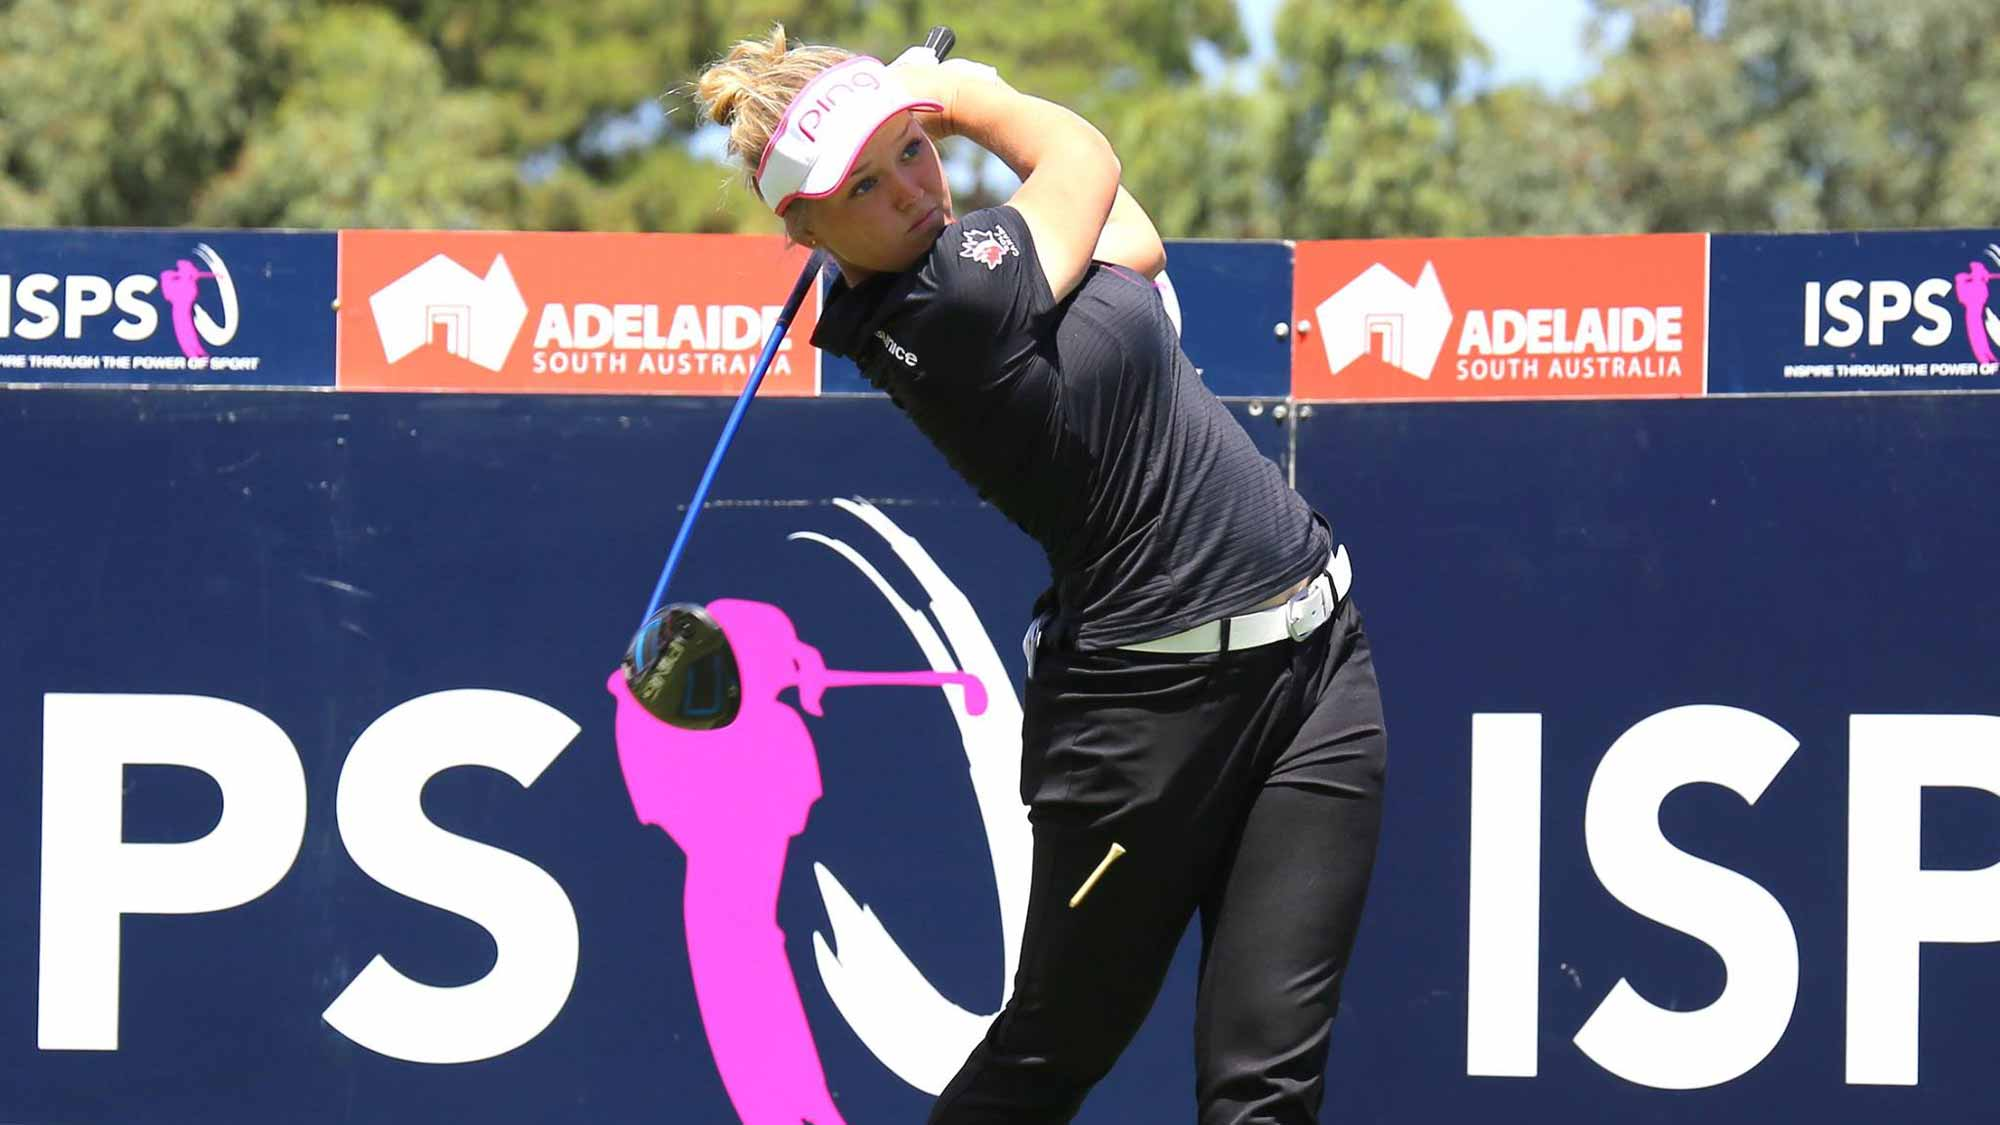 Brooke Henderson during a practice round before the 2016 ISPS Handa Women's Australian Open